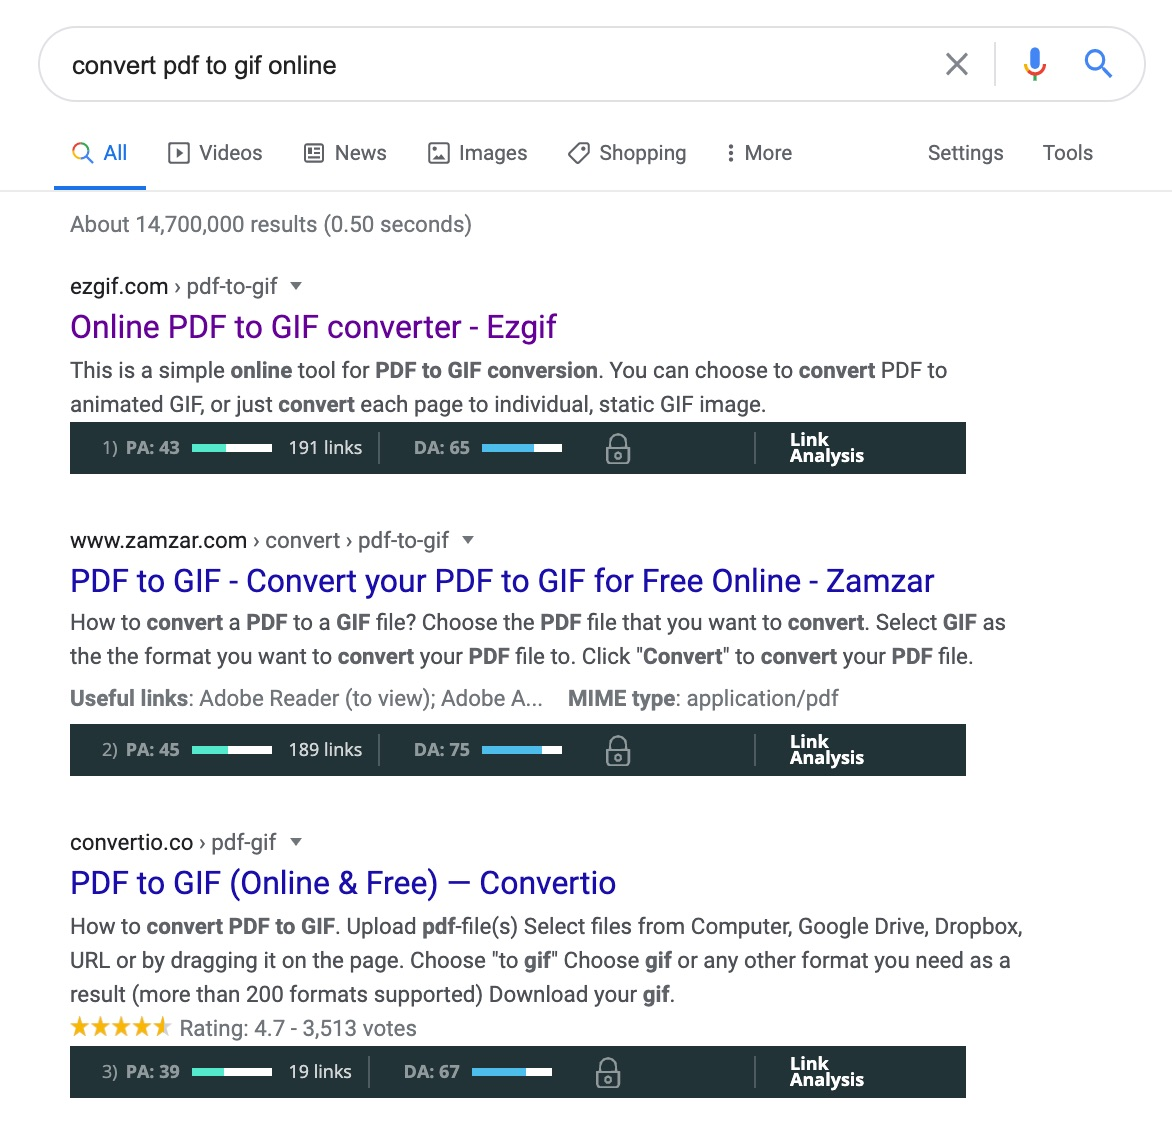 Sample SERP for Tools